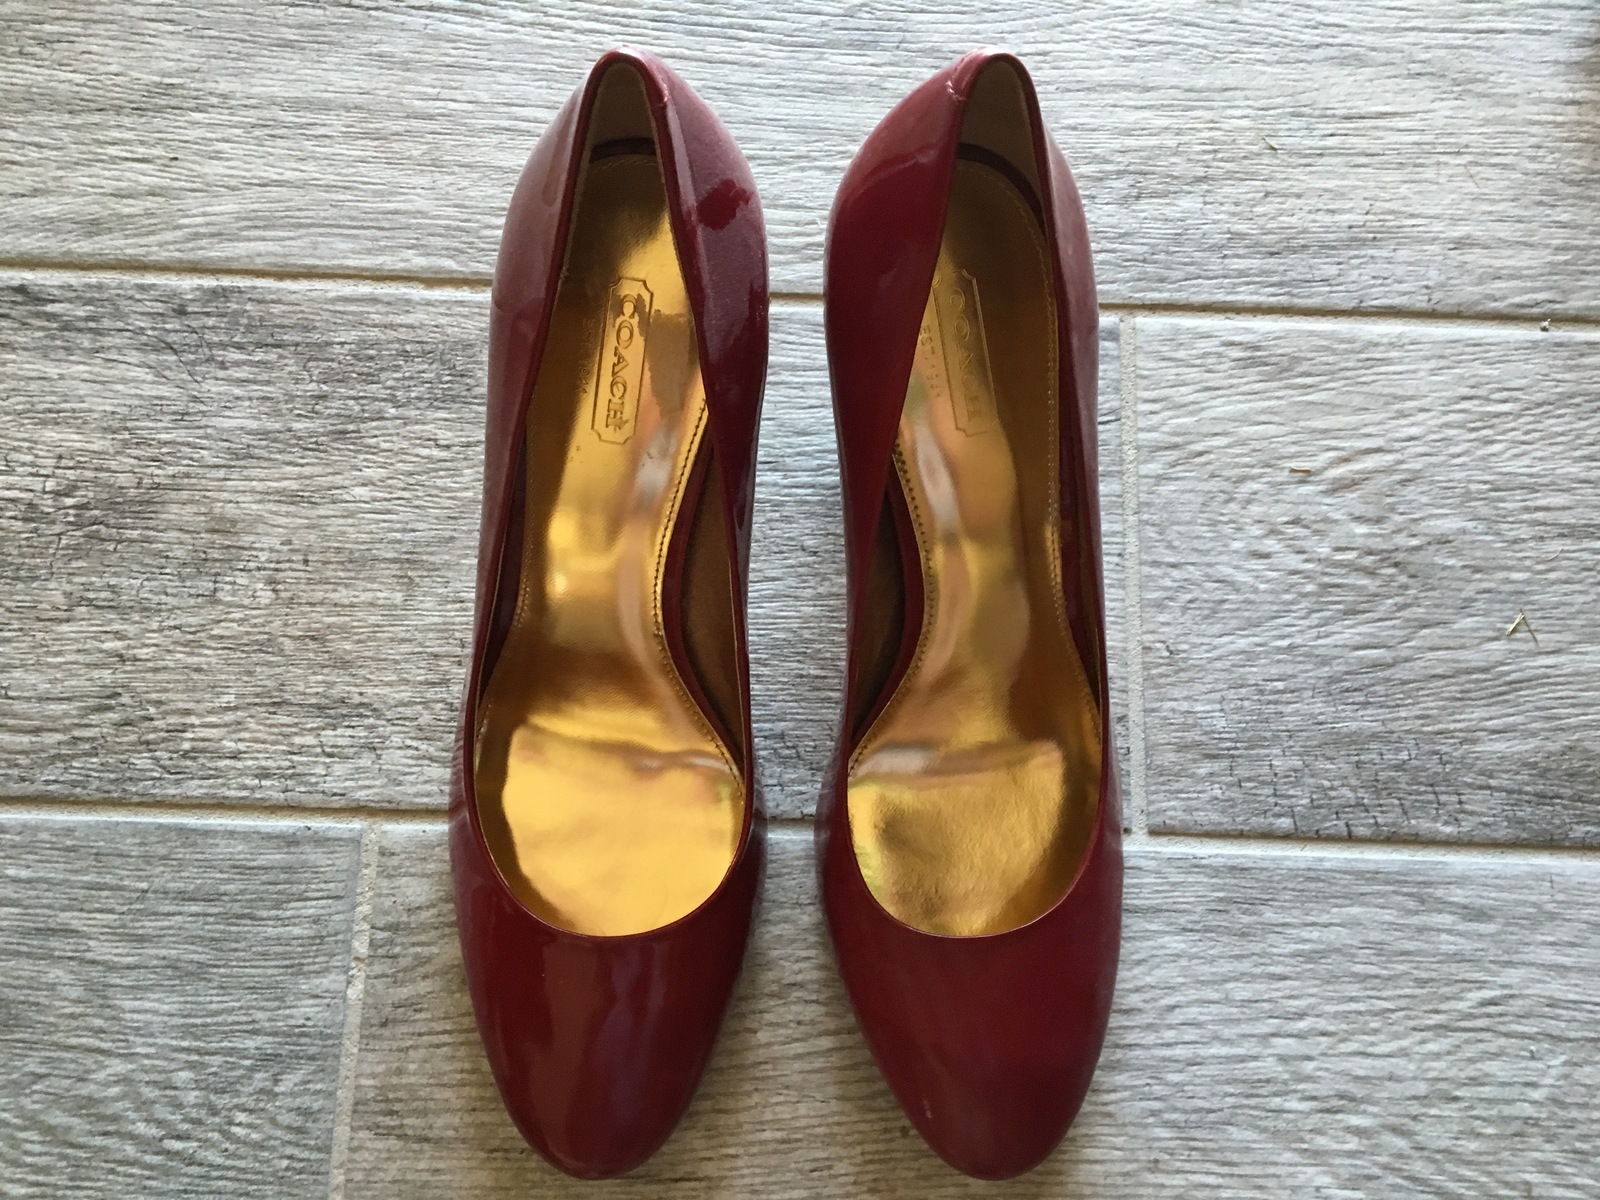 76cad5b9b9 NWOB COACH Maxey Model #A0258 Burgundy Patent Leather Heels - Women's Size  8.5-M